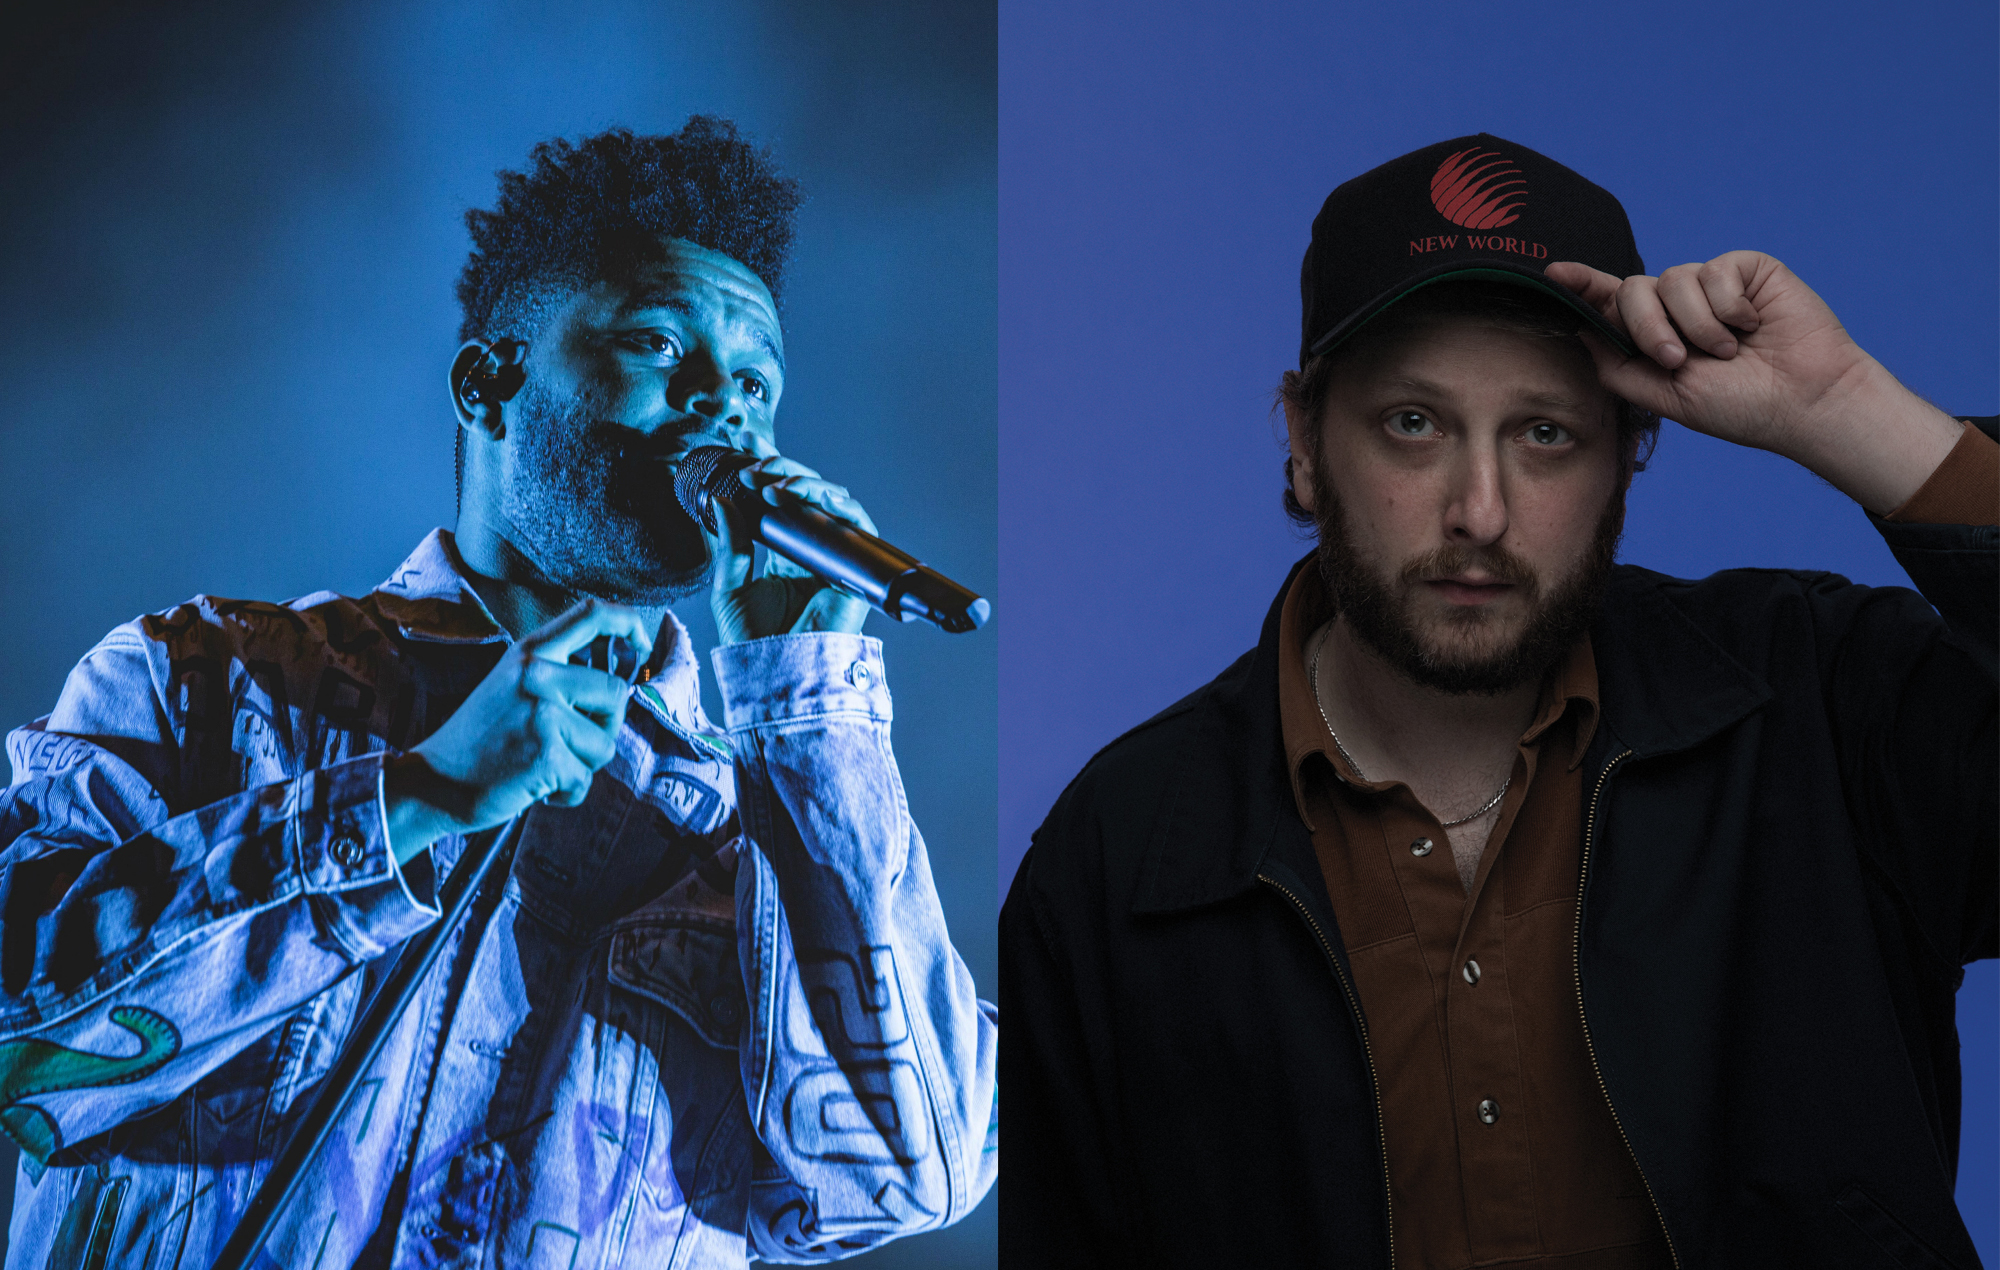 The Weeknd Recorded Music With Oneohtrix Point Never